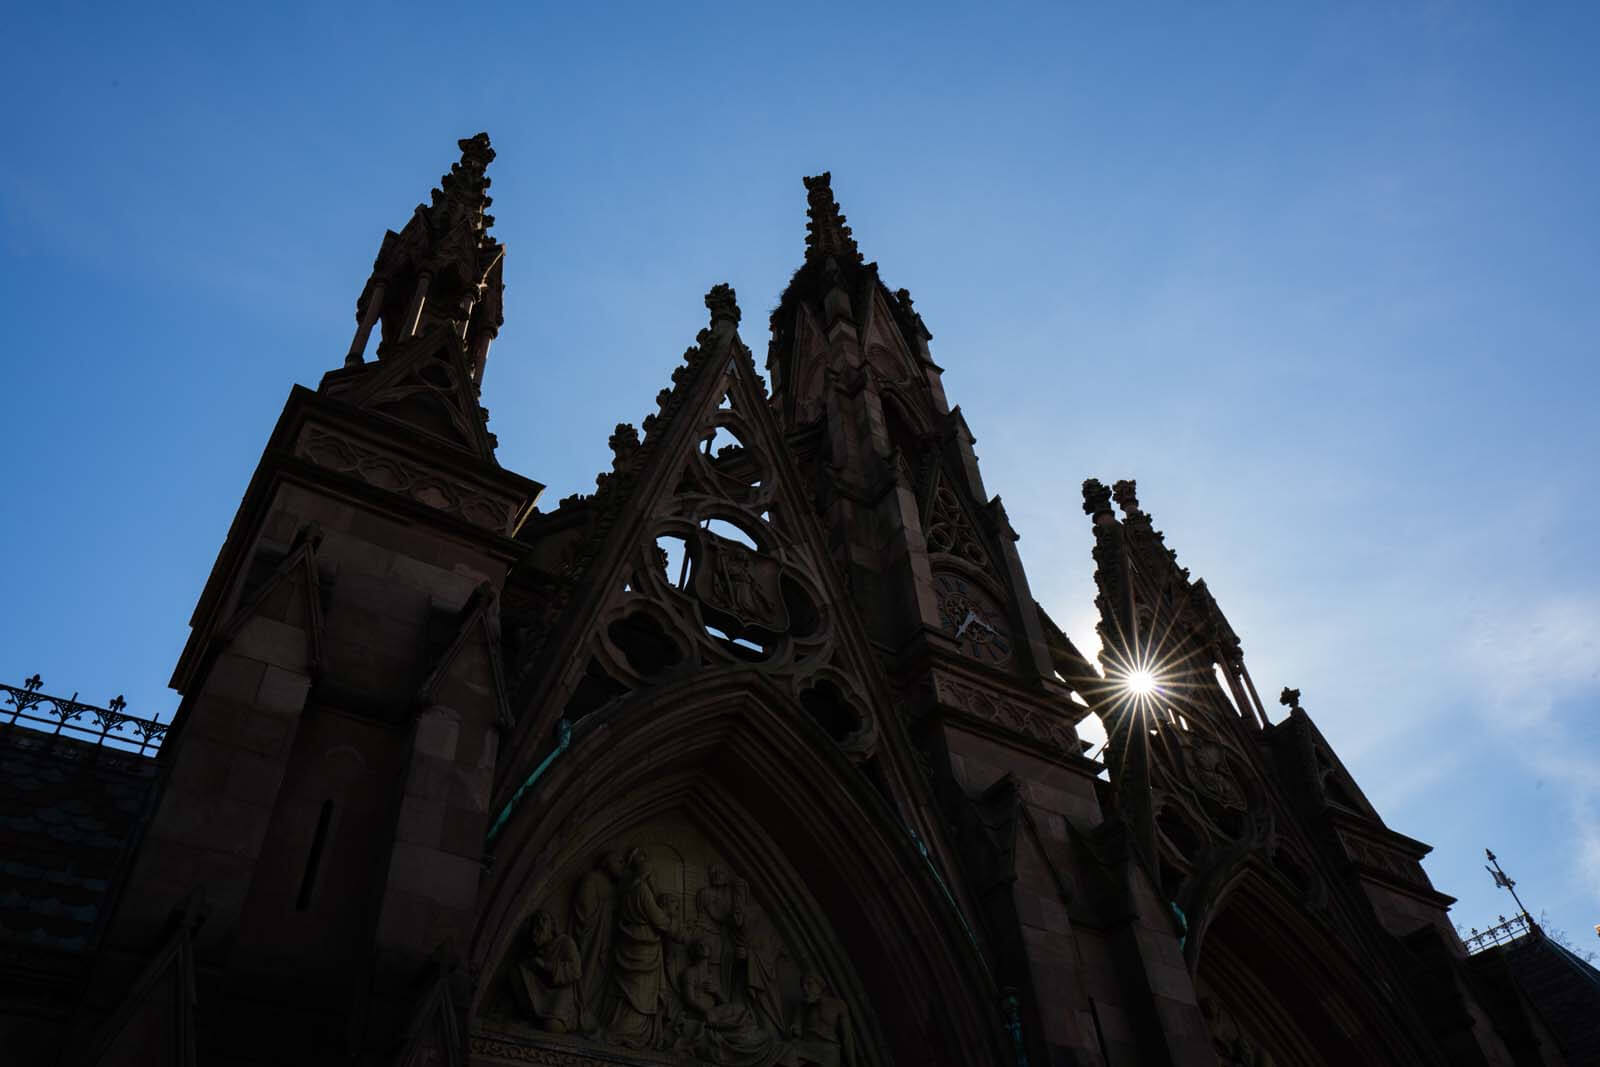 details of the entrance to greenwood cemetery in brooklyn